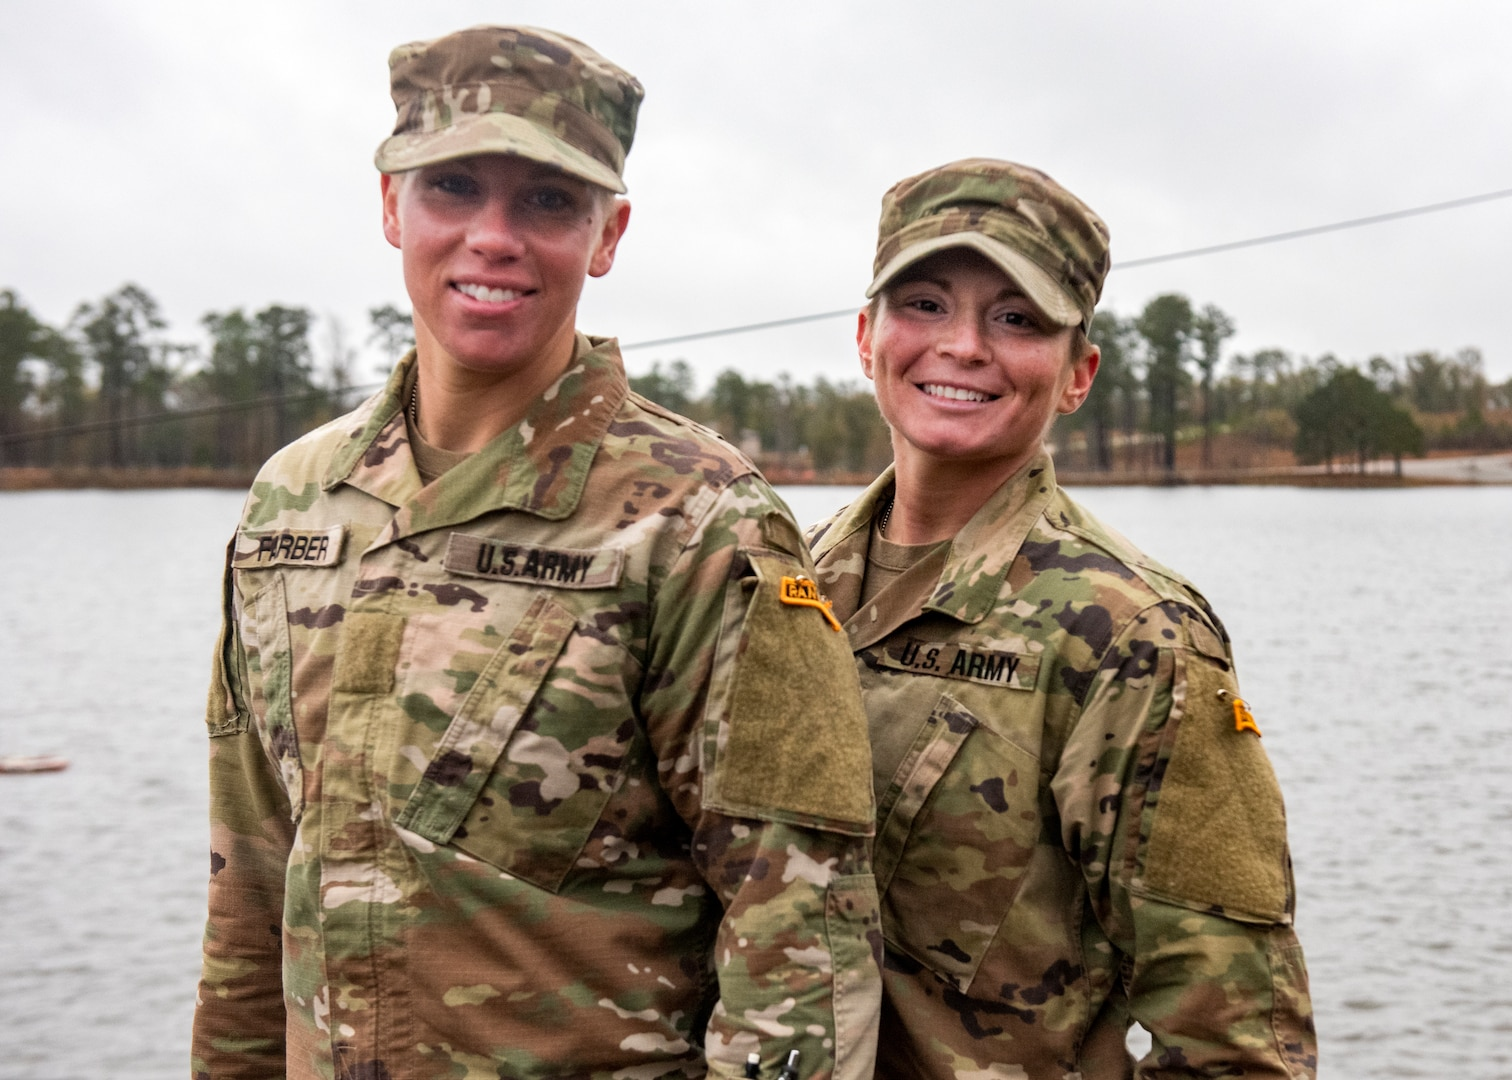 U.S. Army Sgt. Danielle Farber, Pennsylvania National Guard 166th Regional Training Institute Medical Battalion Training Site instructor, and U.S. Army Staff Sgt. Jessica Smiley, South Carolina National Guard military police non-commissioned officer serving with the U.S. Army Training and Doctrine Command, on Dec. 13, 2019, became the first enlisted National Guard women to graduate U.S. Army Ranger School at Fort Benning, Georgia.